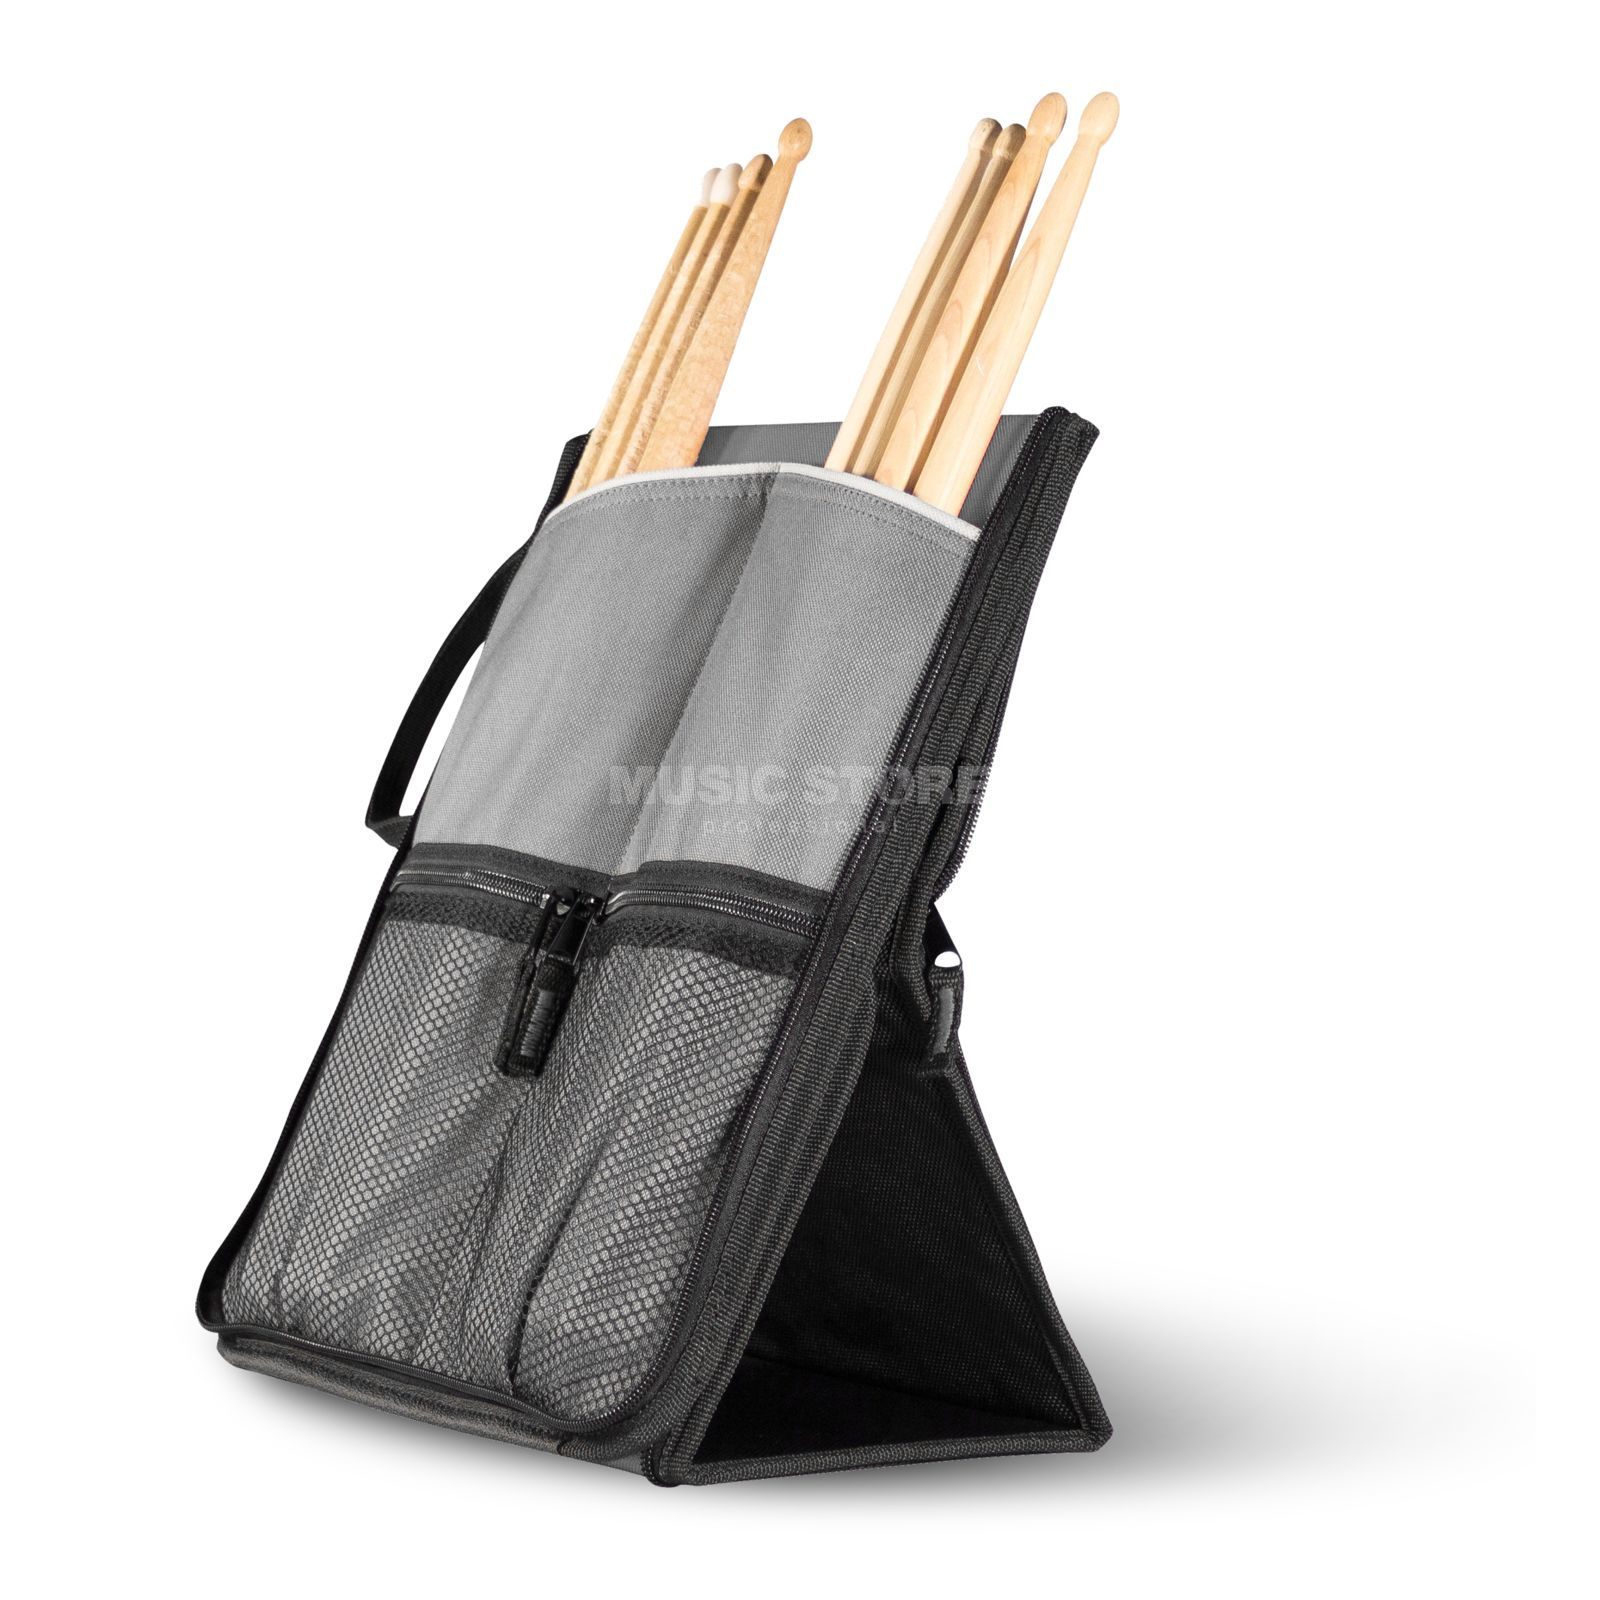 Sabian Flip Stick Bag - Black Grey Produktbillede